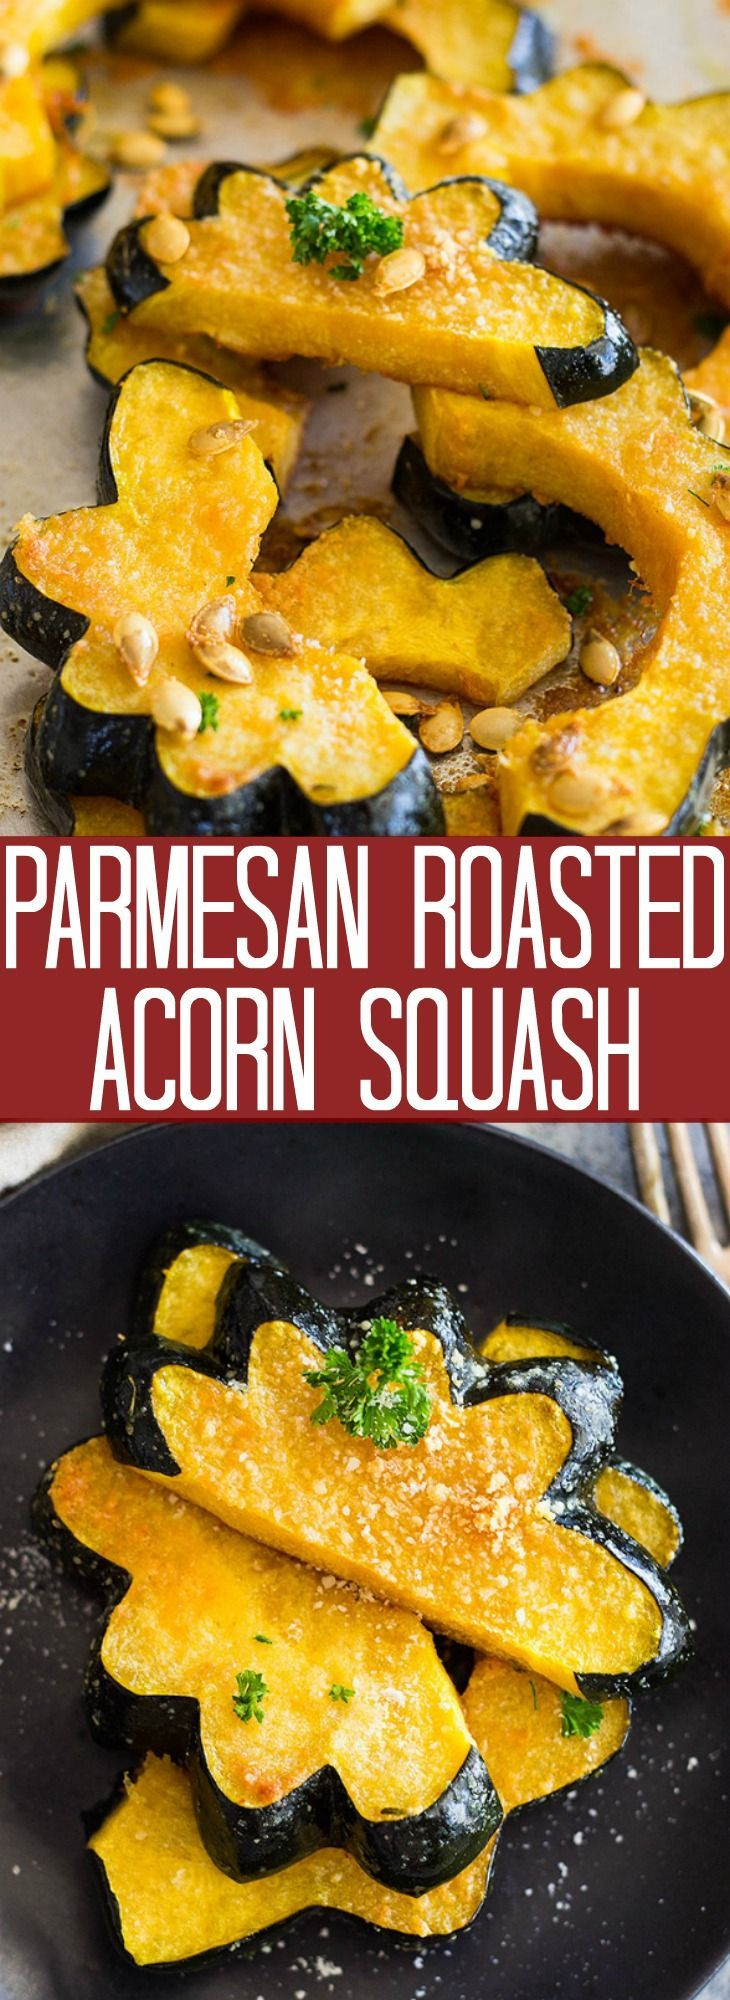 This Parmesan Roasted Acorn Squash Is An Easy Side Dish It Uses